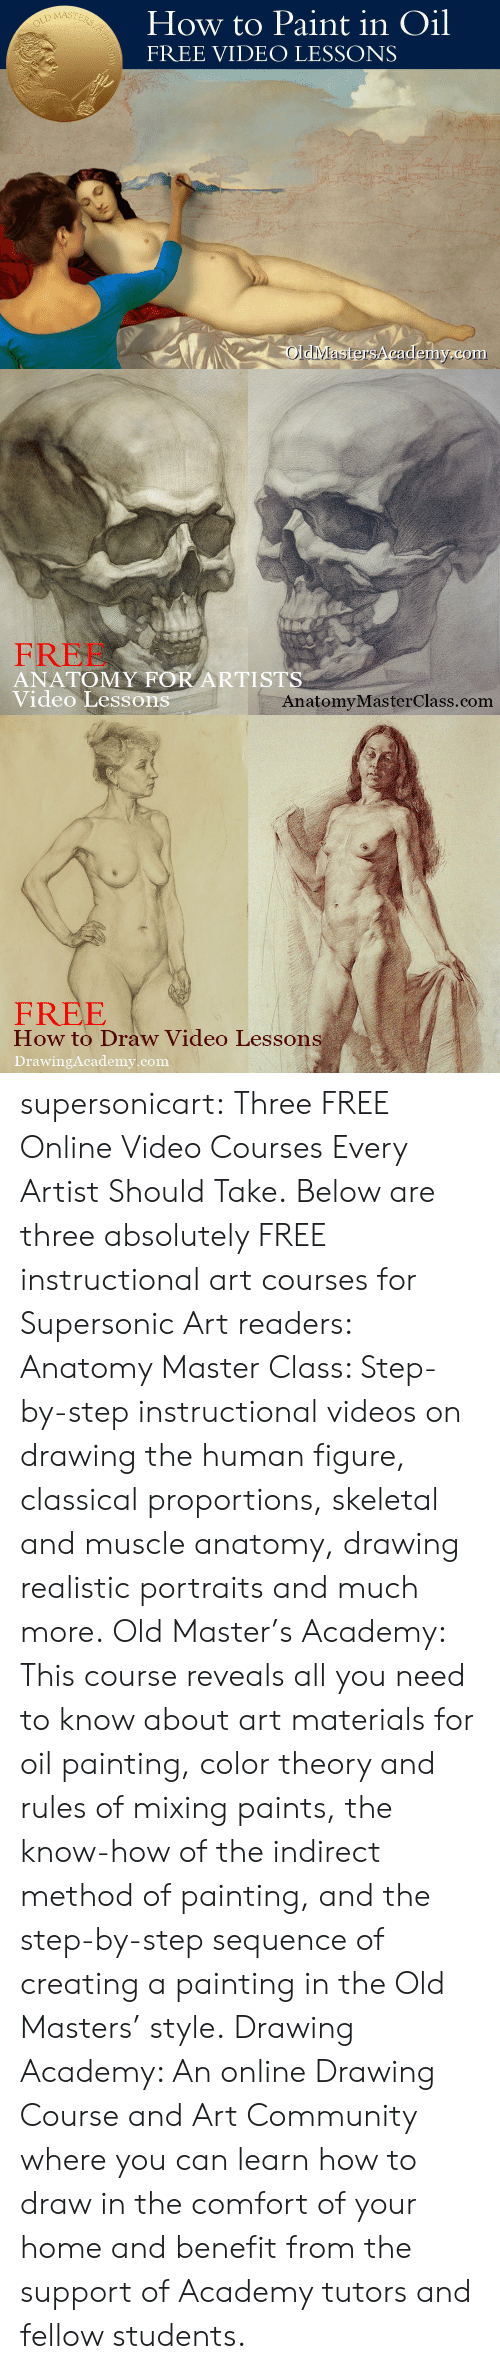 Maste: How to Paint in Oil  FREE VIDEO LESSONS  MASTE  Rs  OldiMastersA cademy.com   FREE  ANATOMY FOR ARTISTS  Video Lesson  AnatomyMasterClass.com   FREE  How to Draw Video Lessons  DrawingAcademy.com supersonicart: Three FREE Online Video Courses Every Artist Should Take. Below are three absolutely FREE instructional art courses for Supersonic Art readers:  Anatomy Master Class: Step-by-step instructional videos on drawing the human figure, classical proportions, skeletal and muscle anatomy, drawing realistic portraits and much more.  Old Master's Academy: This course reveals all you need to know about art materials for oil painting, color theory and rules of mixing paints, the know-how of the indirect method of painting, and the step-by-step sequence of creating a painting in the Old Masters' style.  Drawing Academy: An online Drawing Course and Art Community where you can learn how to draw in the comfort of your home and benefit from the support of Academy tutors and fellow students.